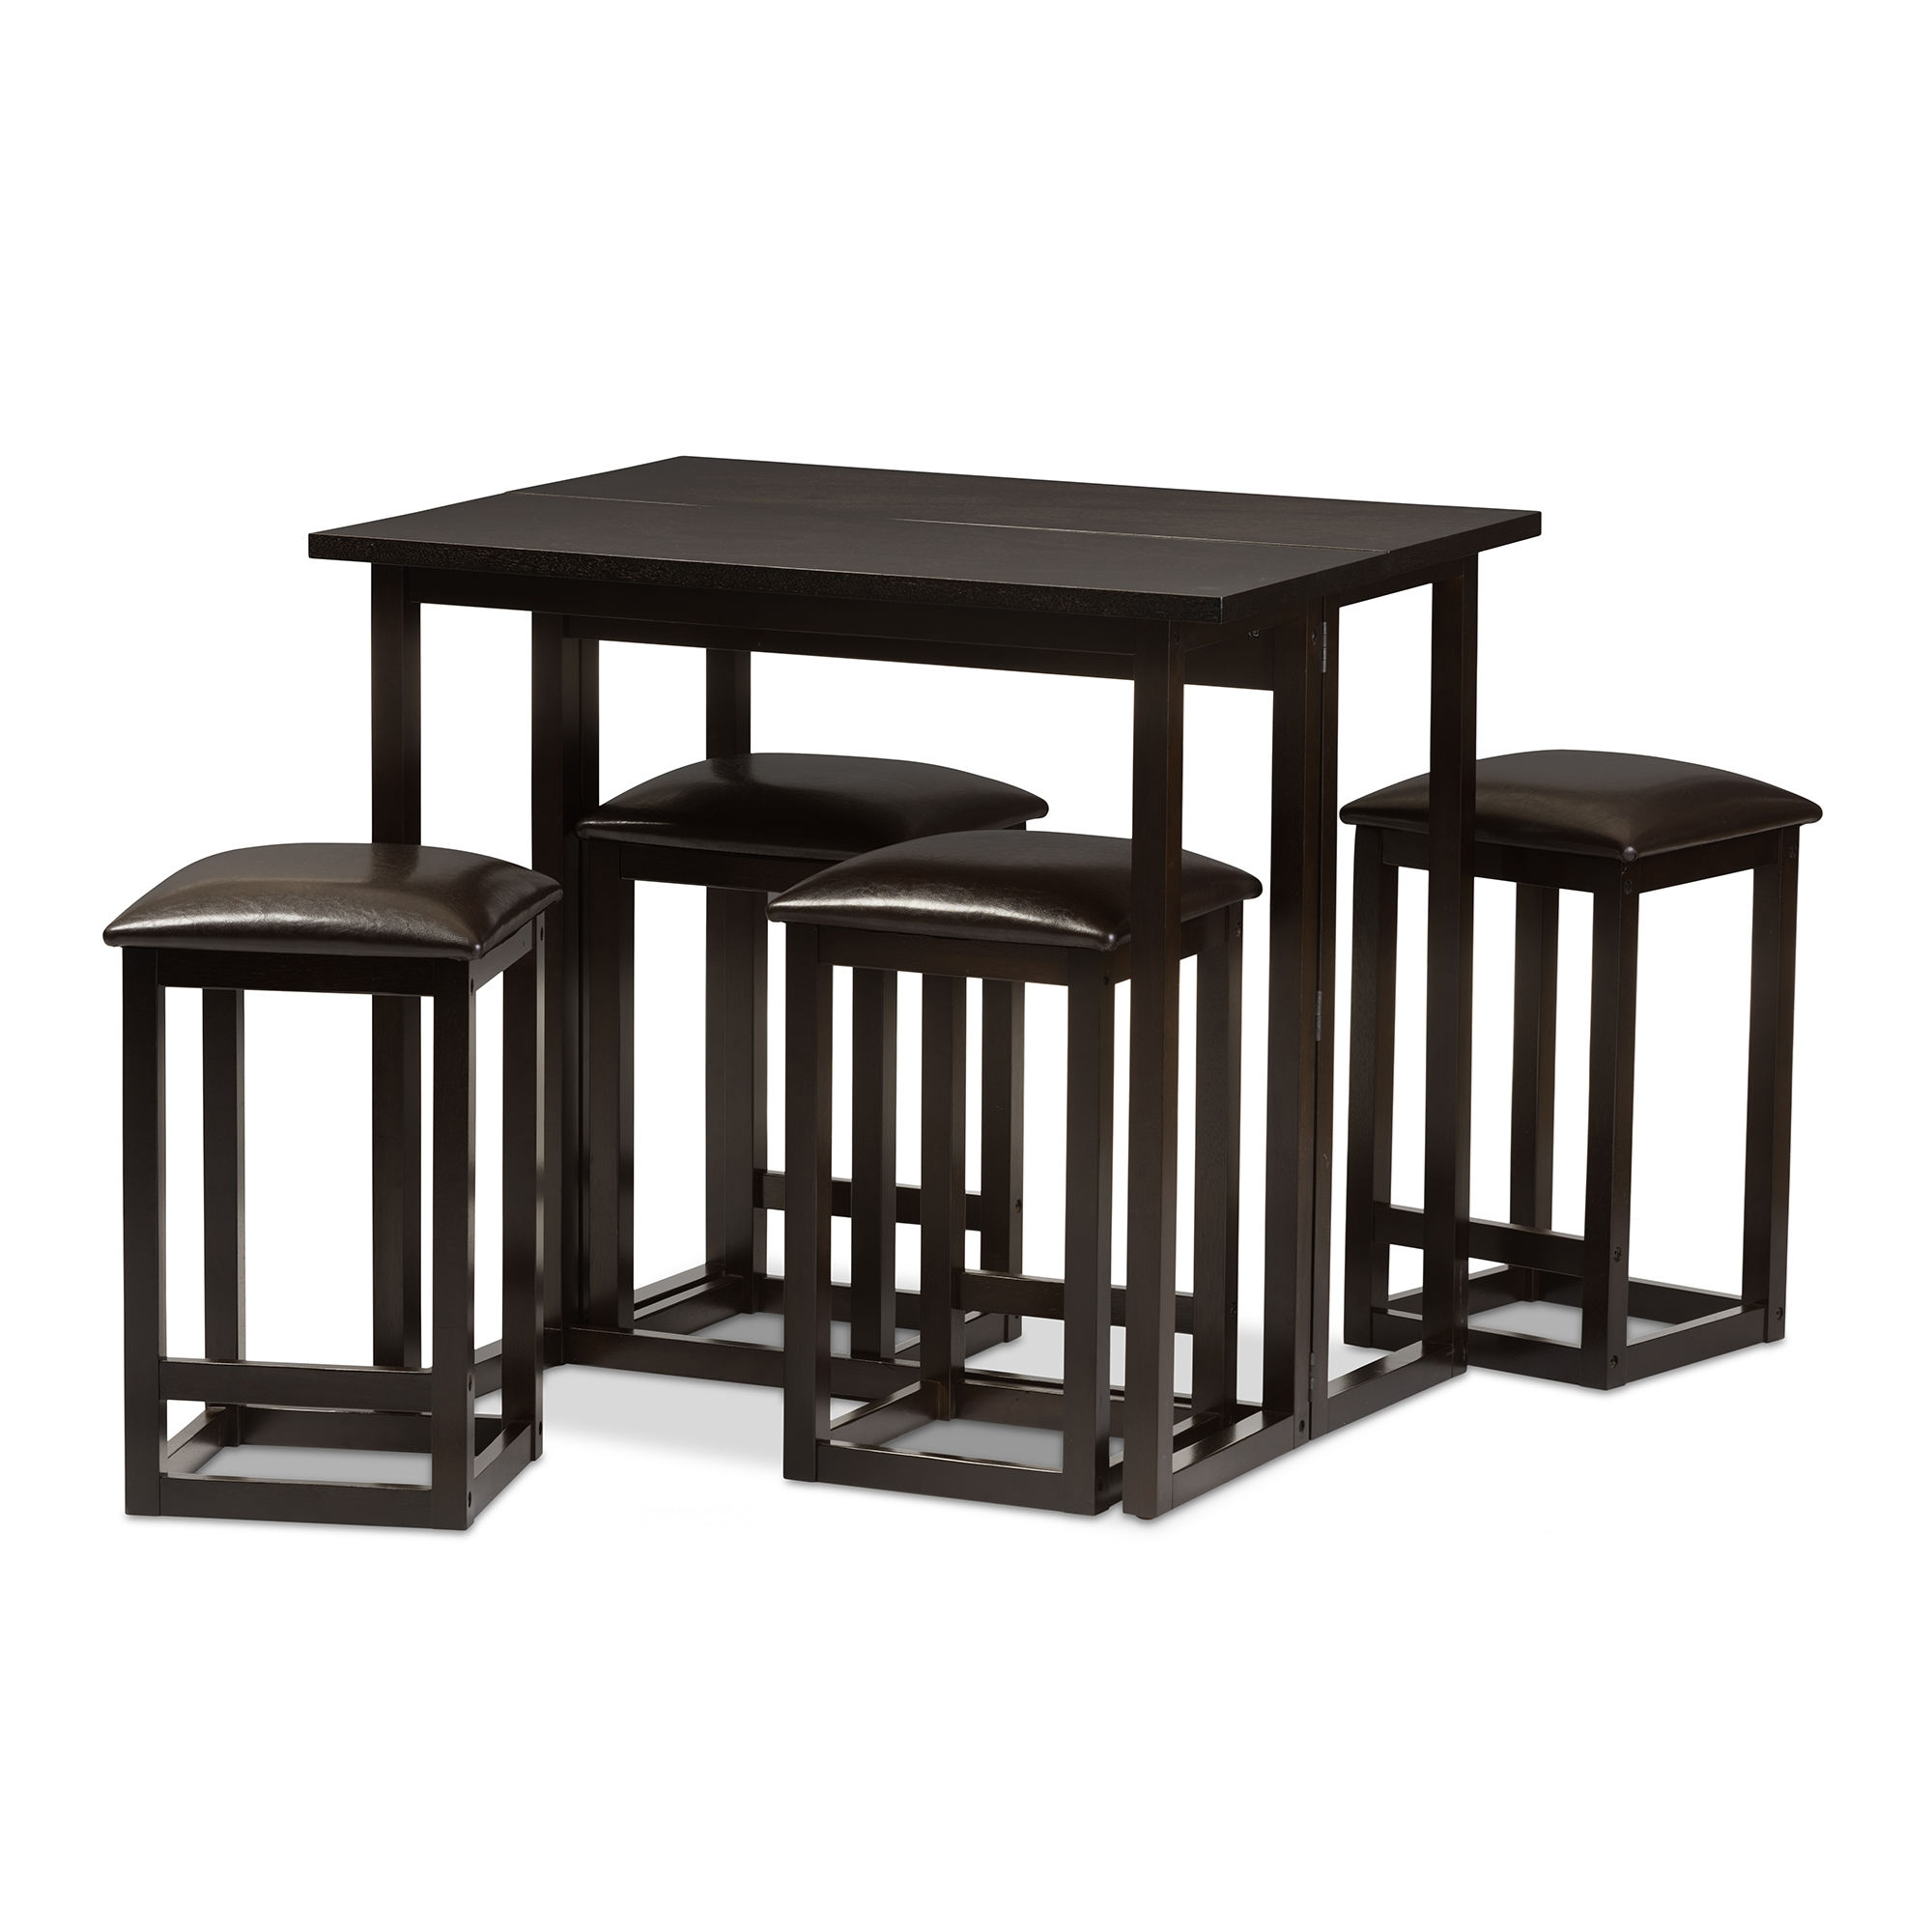 Baxton Studio Leeds Brown Wood Collapsible Pub Table Set Leeds Brown Wood Collapsible Pub Table Set  sc 1 st  Baxton Studio & Bar Table Sets | Bar Furniture | Affordable Modern Design | Baxton ...